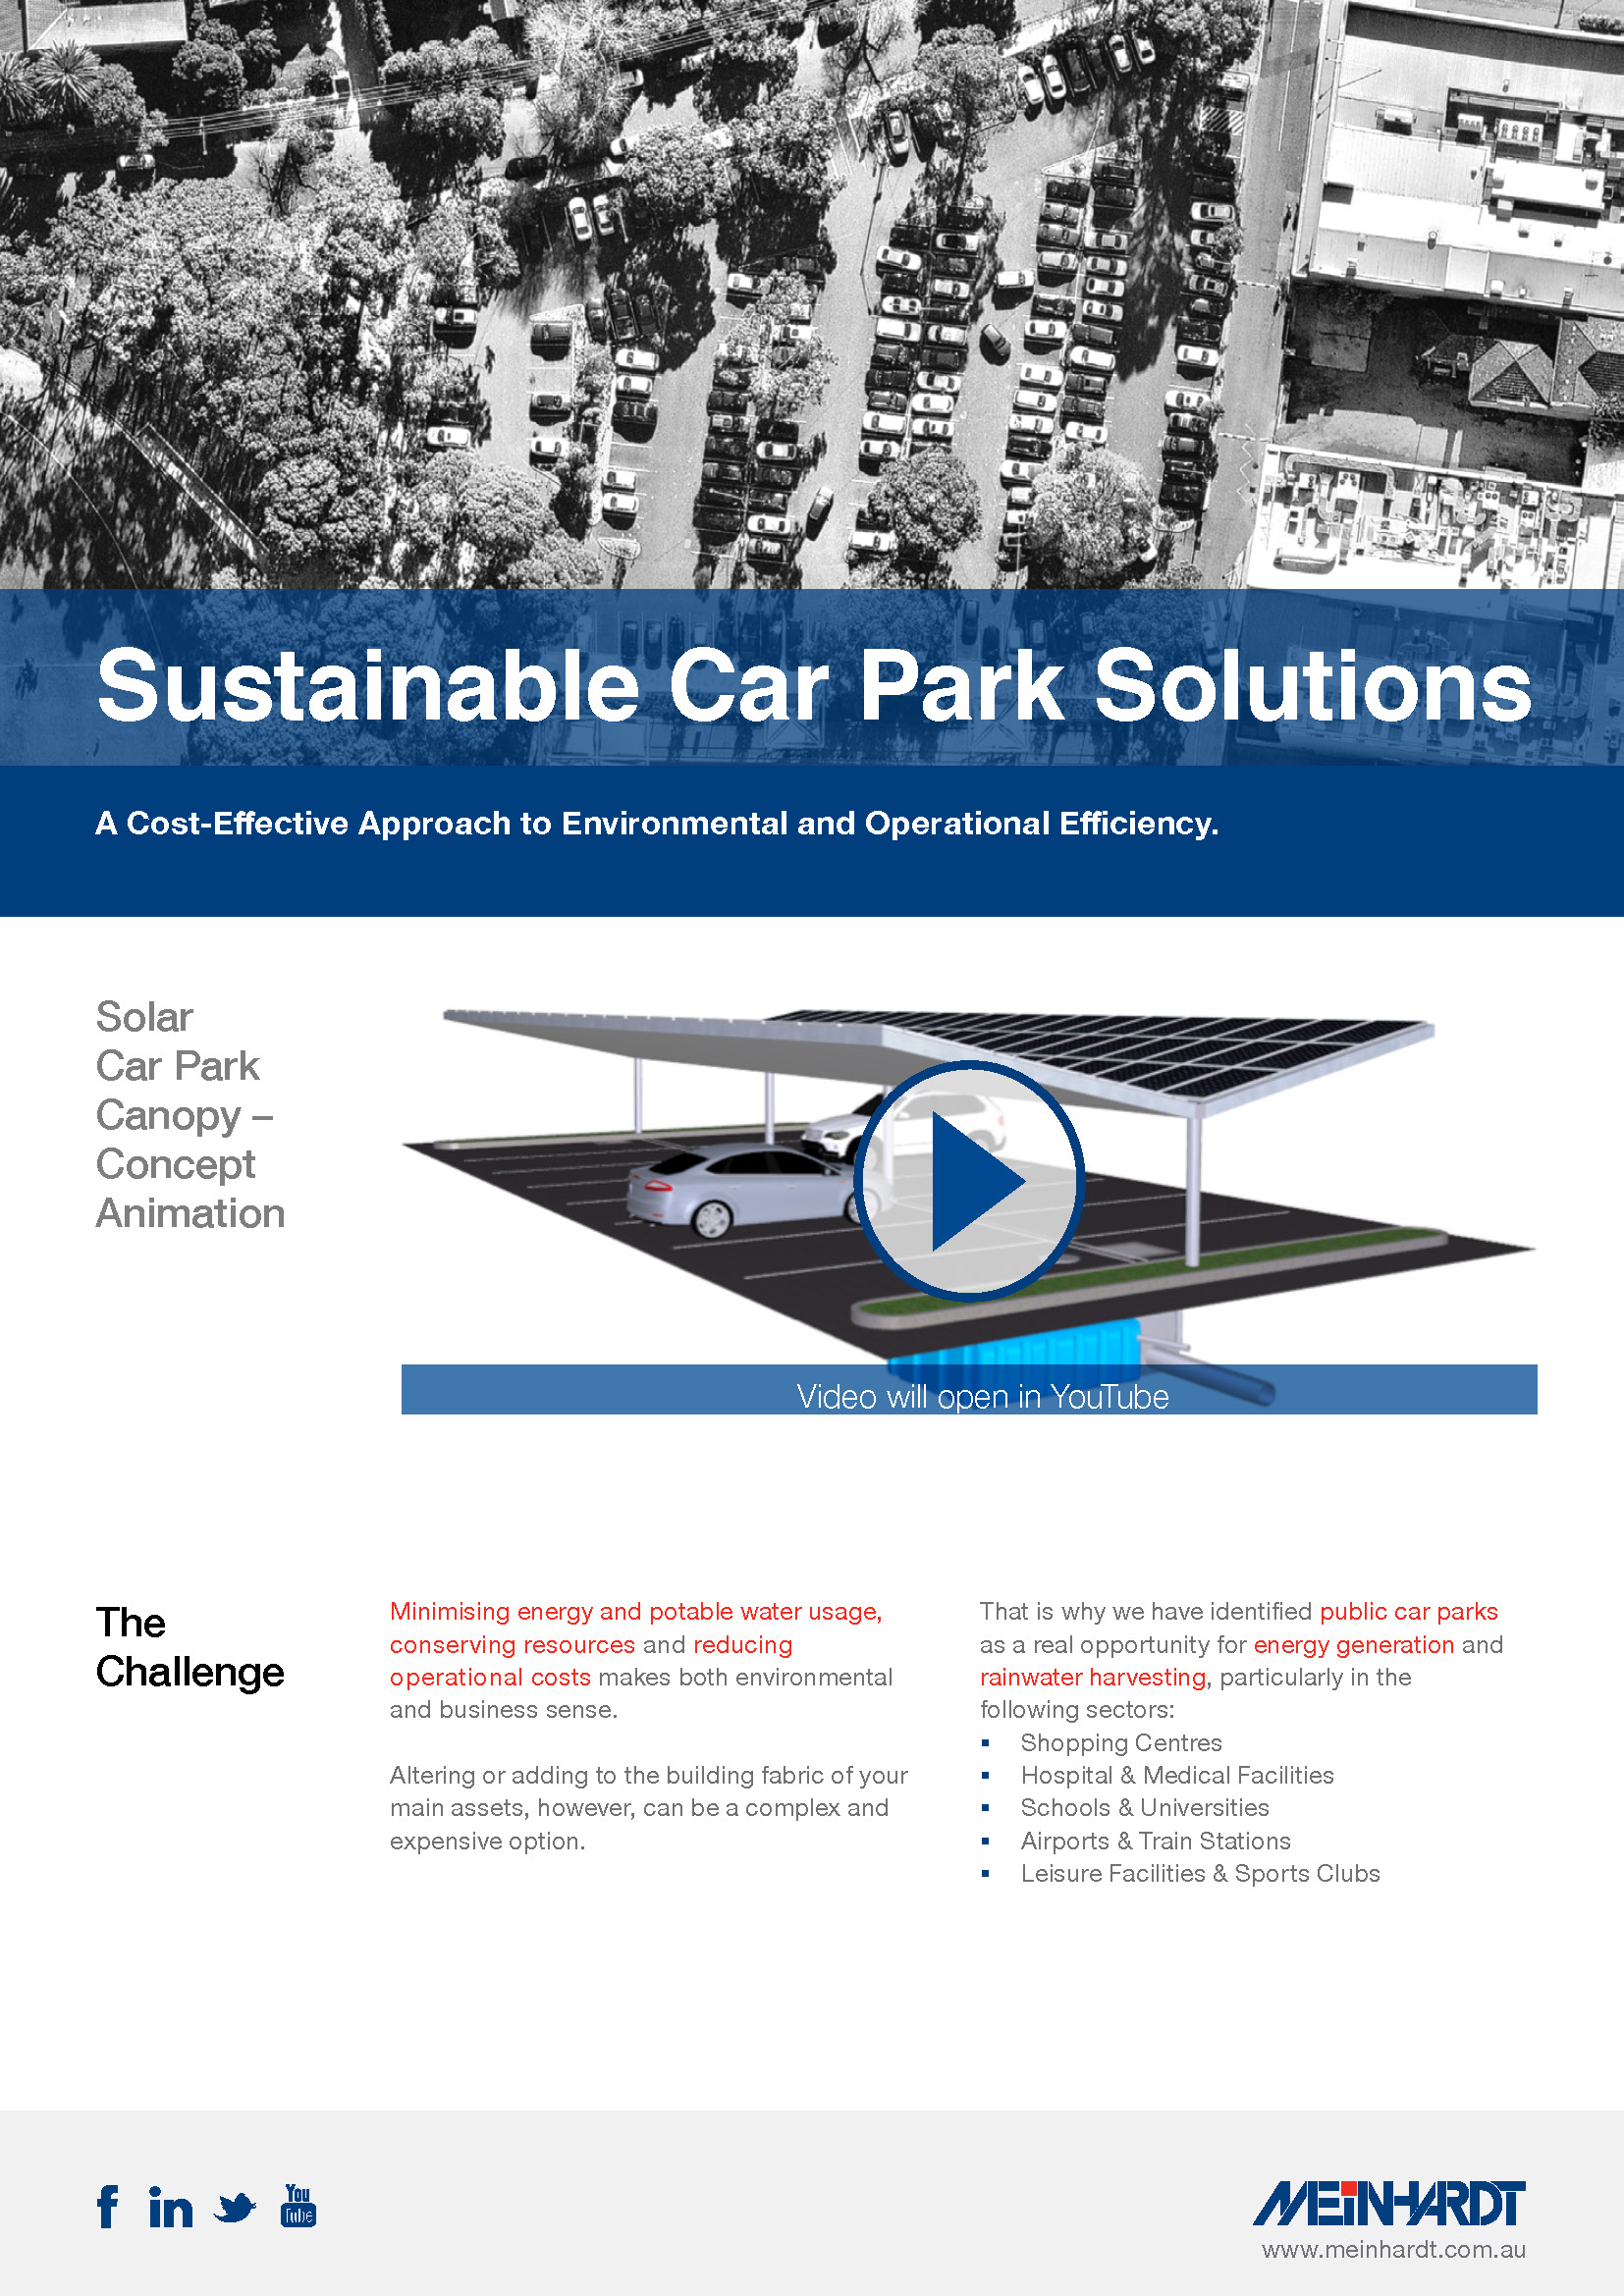 Meinhardt_Sustainable Carparks_Page_1